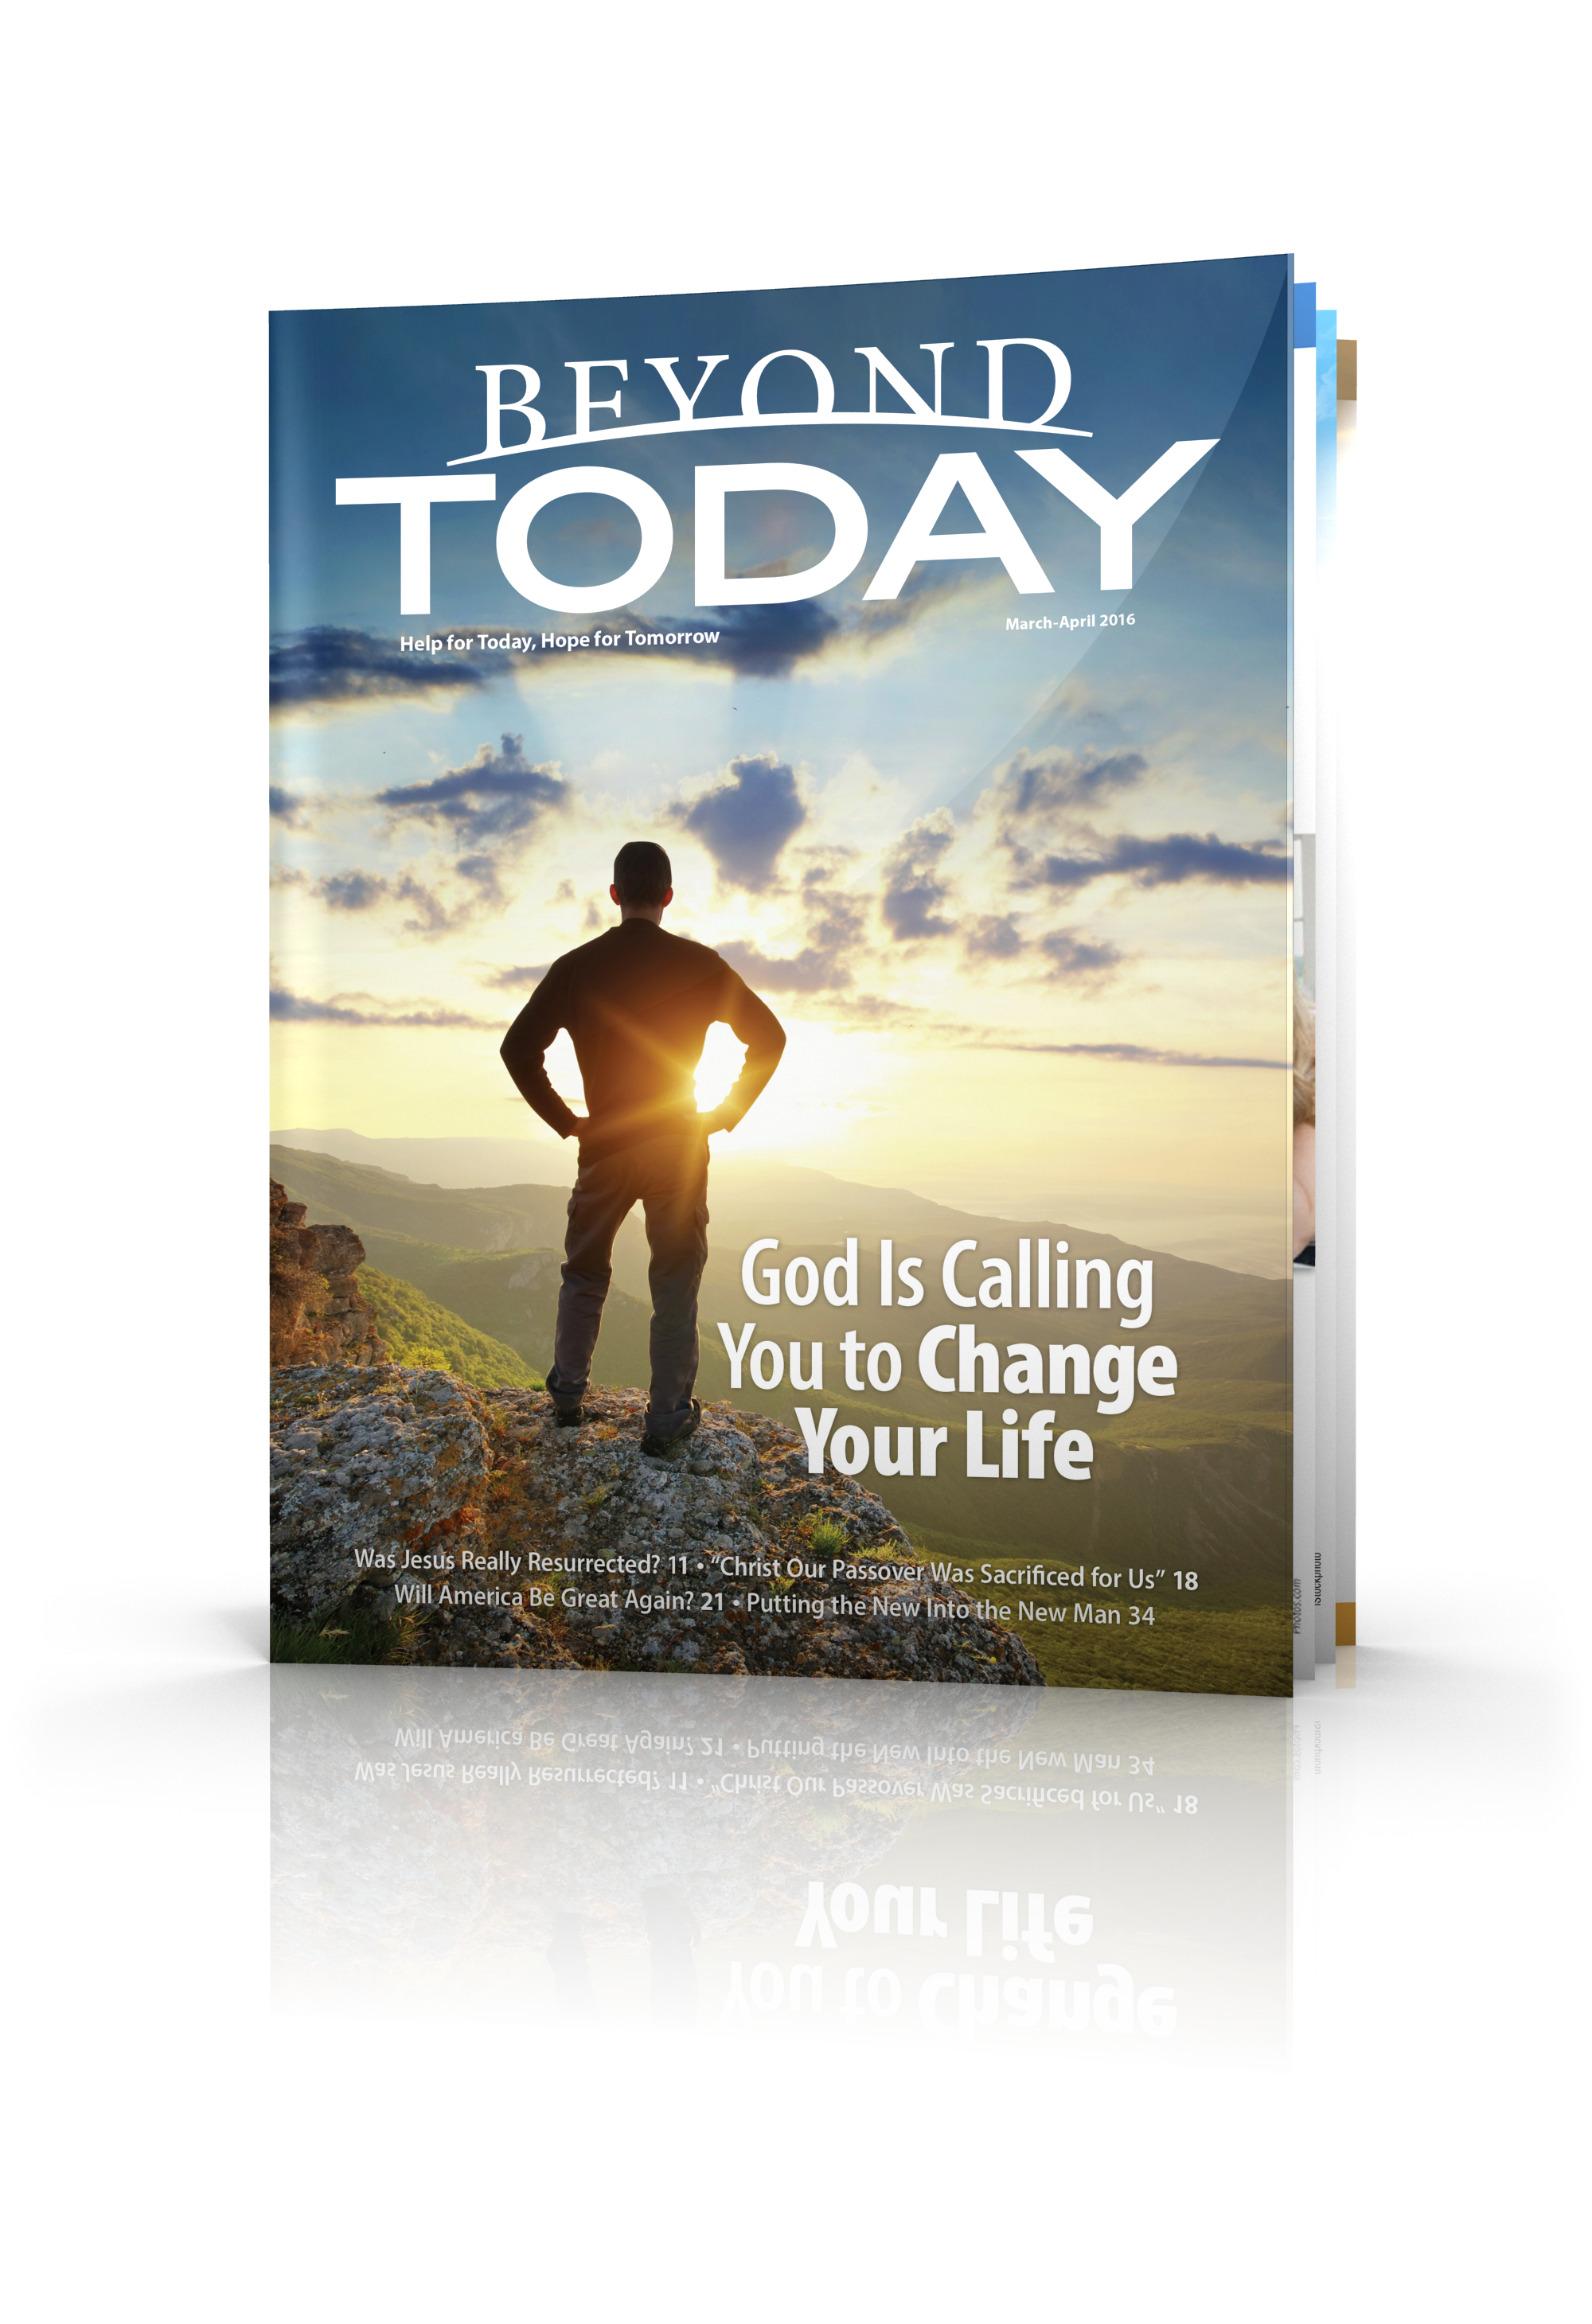 God Is Calling You to Change Your Life | United Church of God